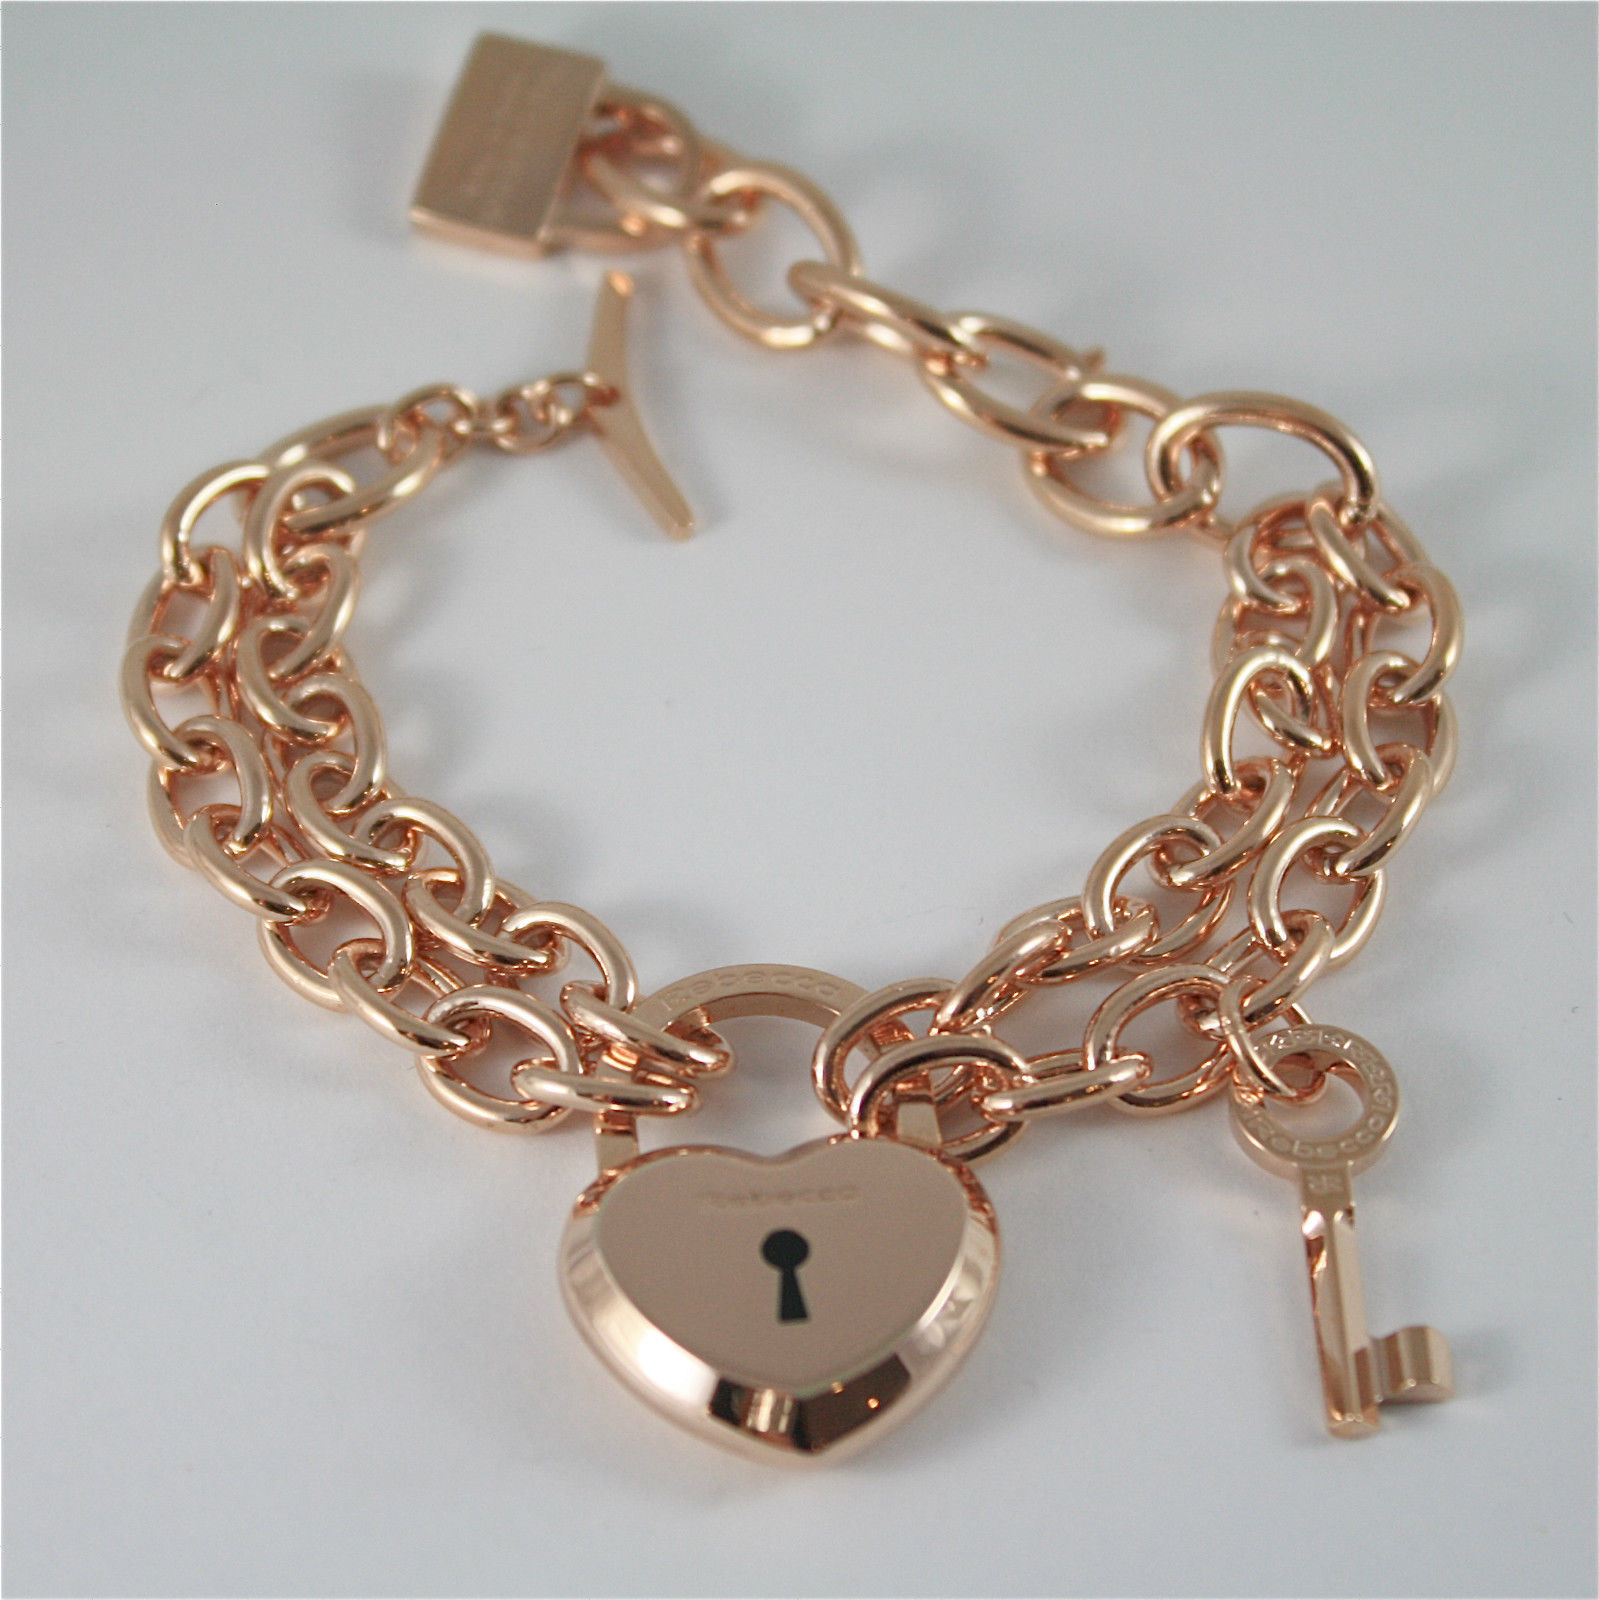 ROSE GOLD PLATED BRONZE REBECCA BRACELET LOVE LOCK BLLBRB24 MADE IN ITALY 7.87